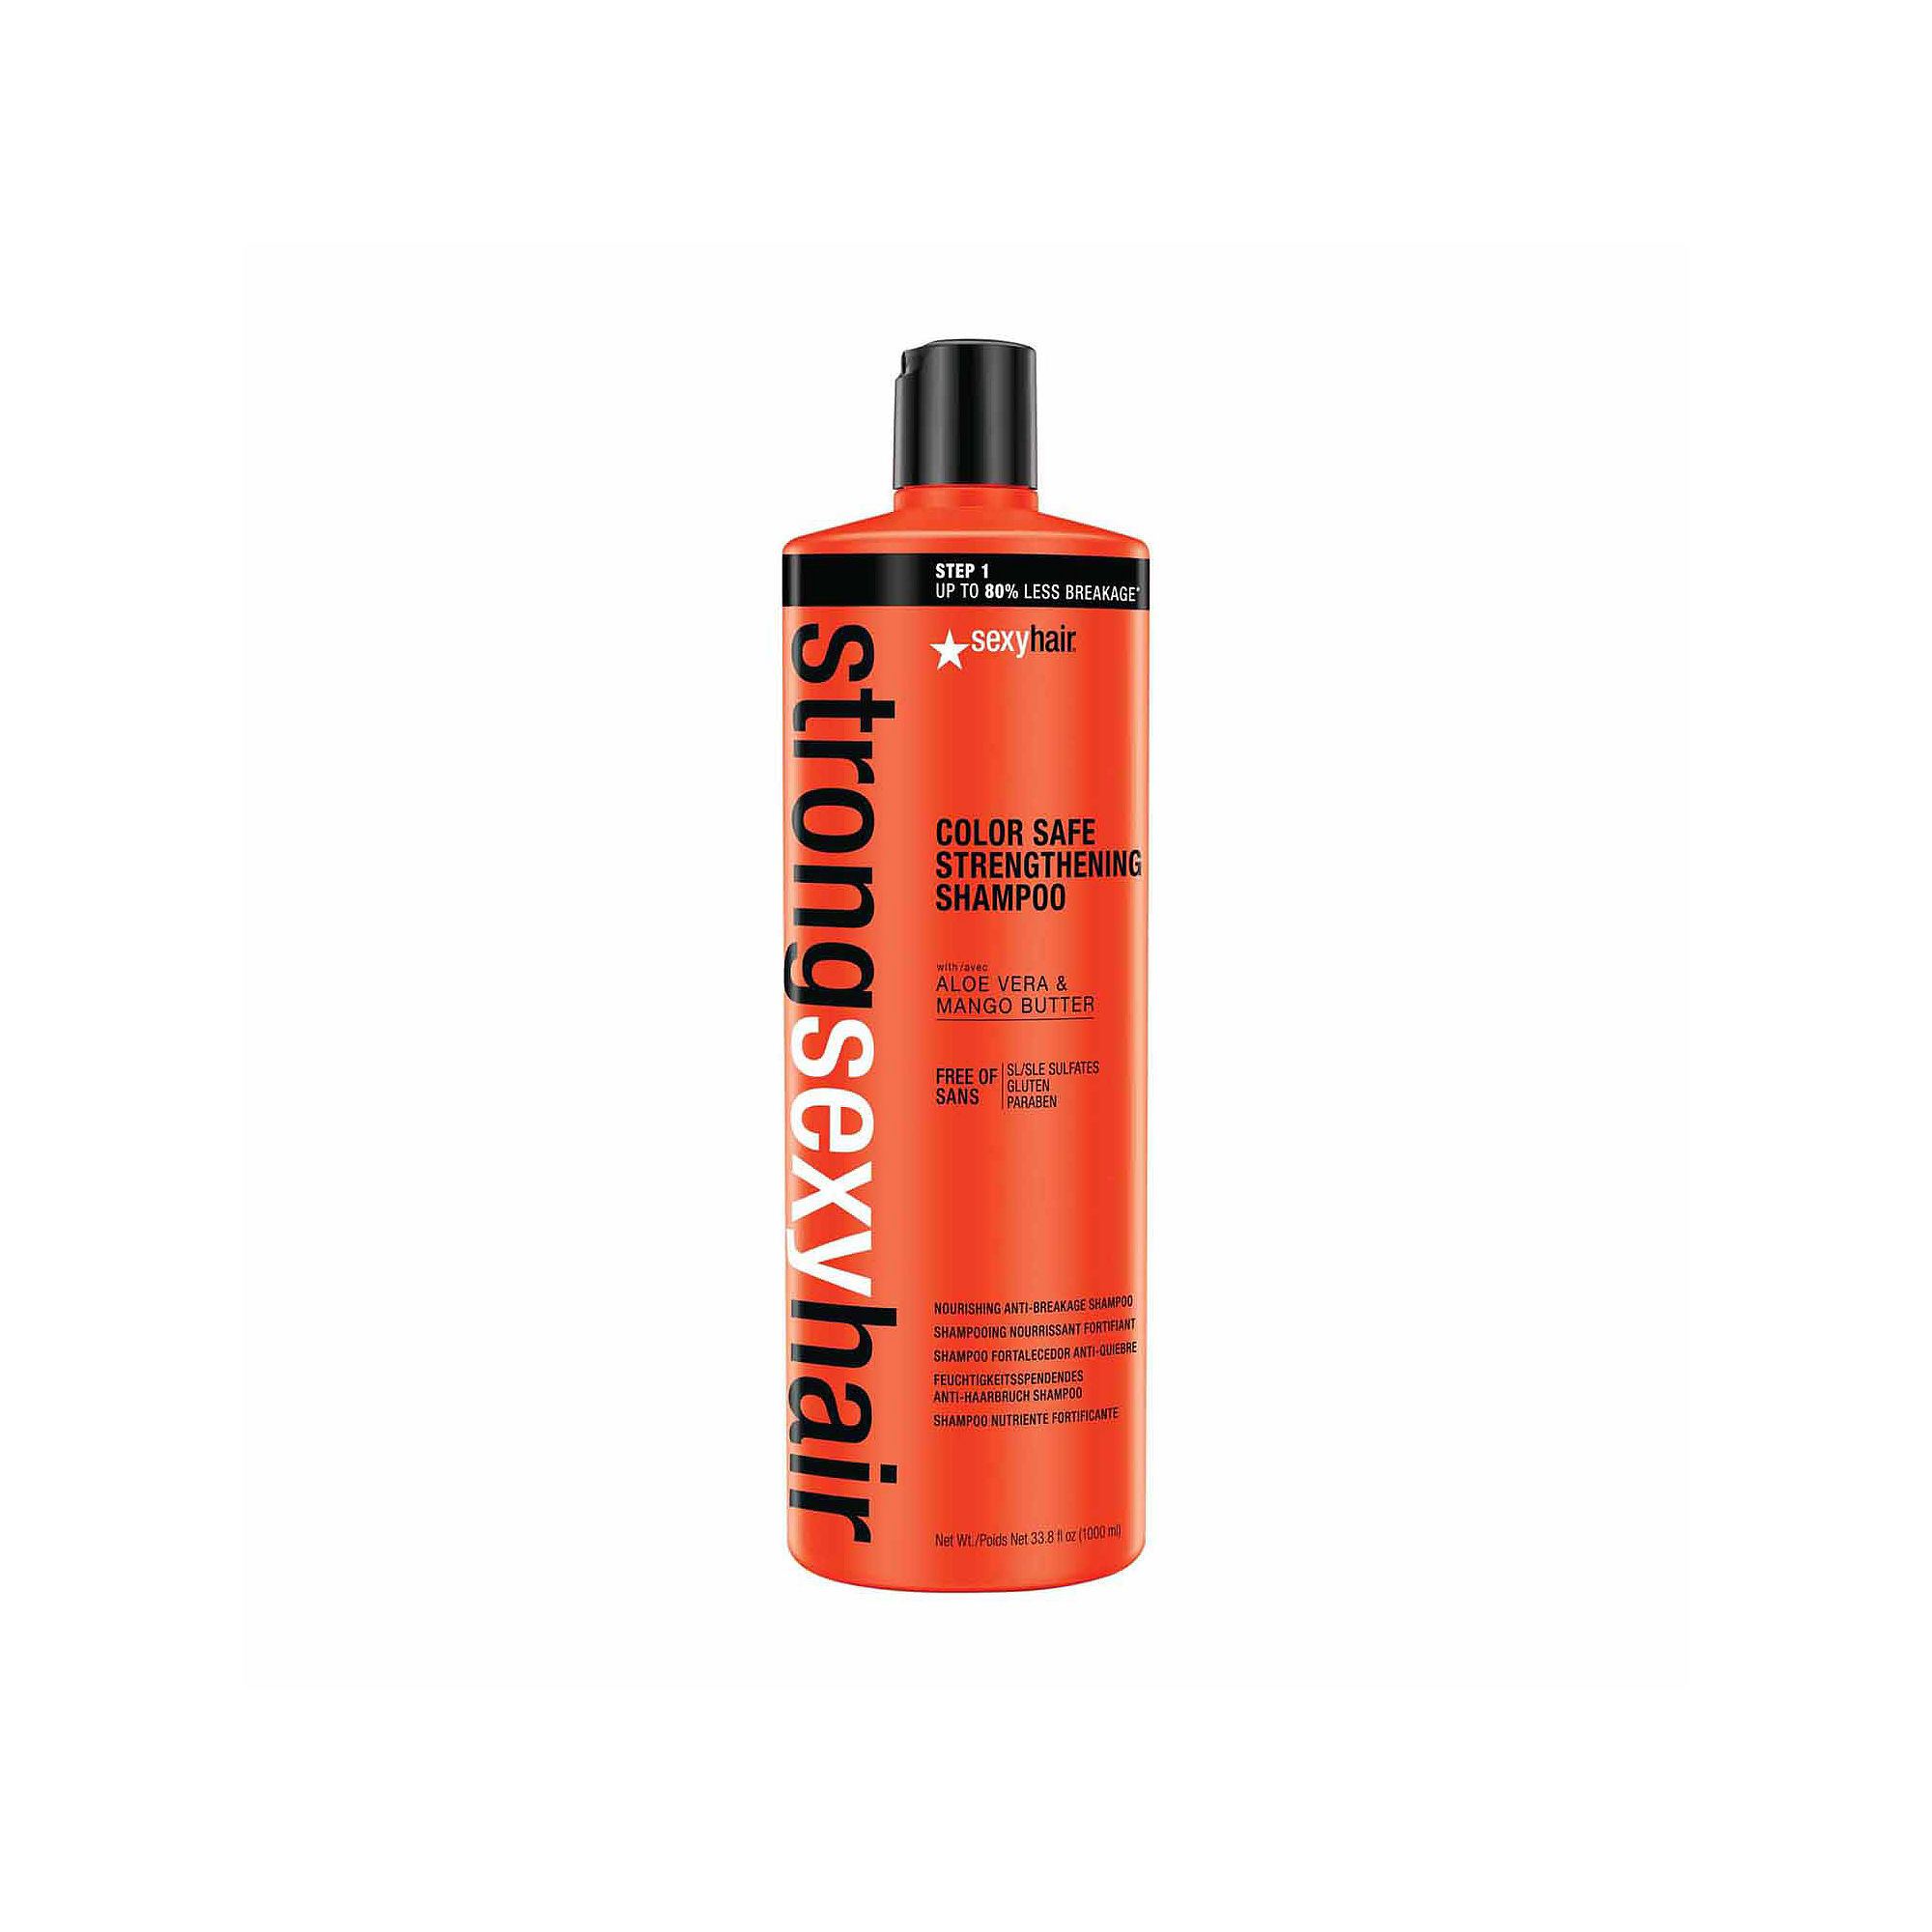 sexyhair® Strong Sexy Hair Strengthening Shampoo